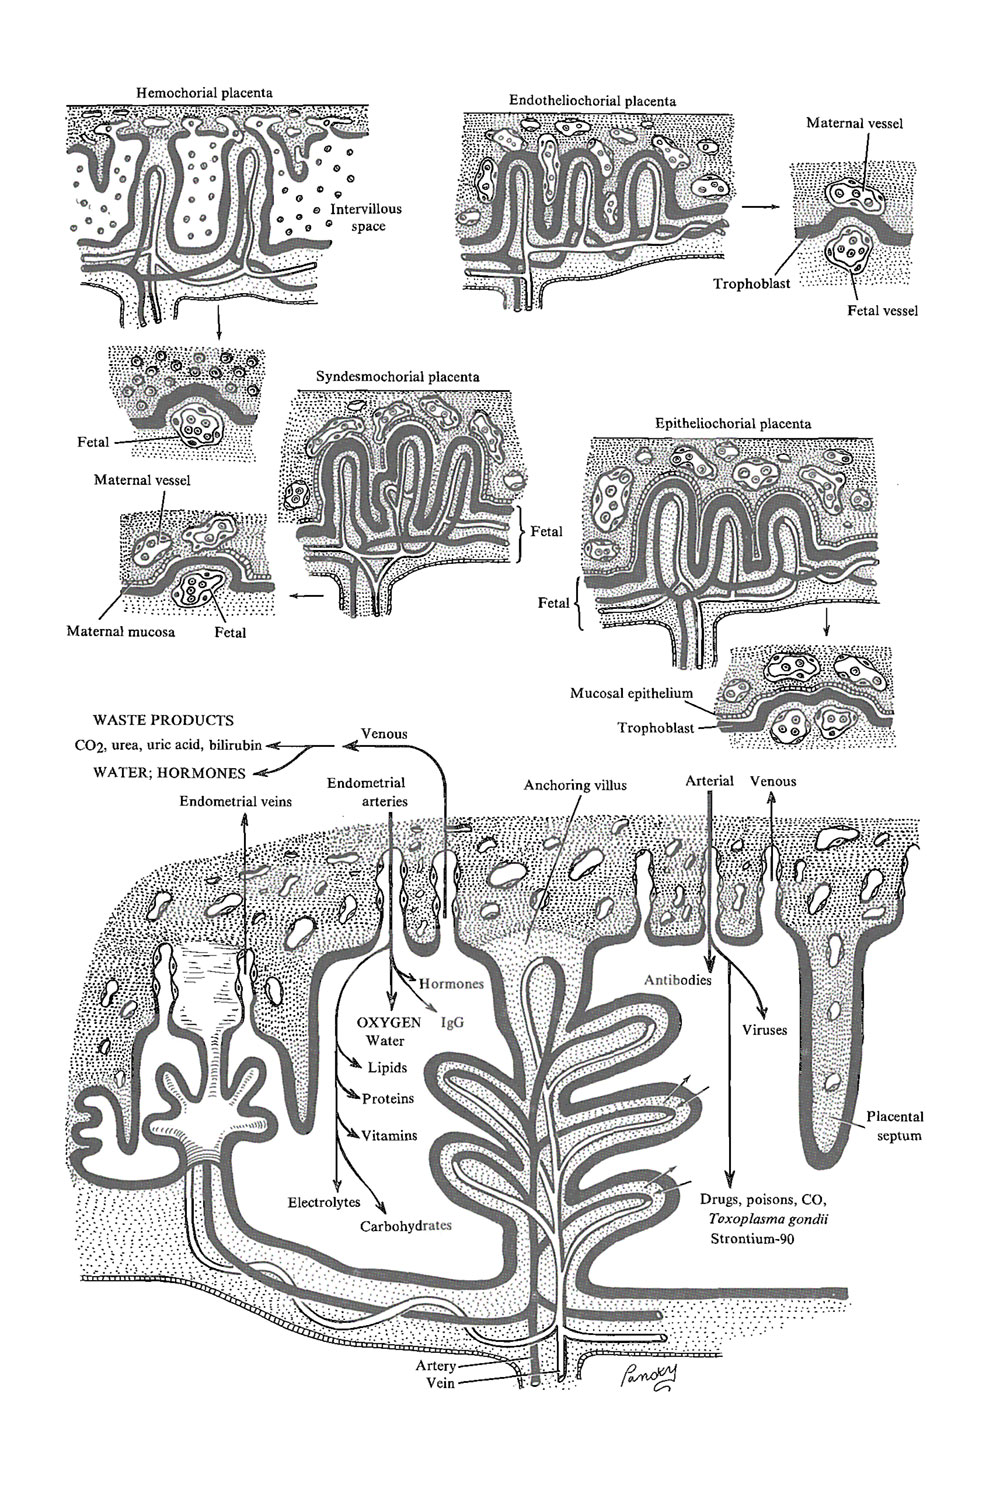 placental physiology: image #1